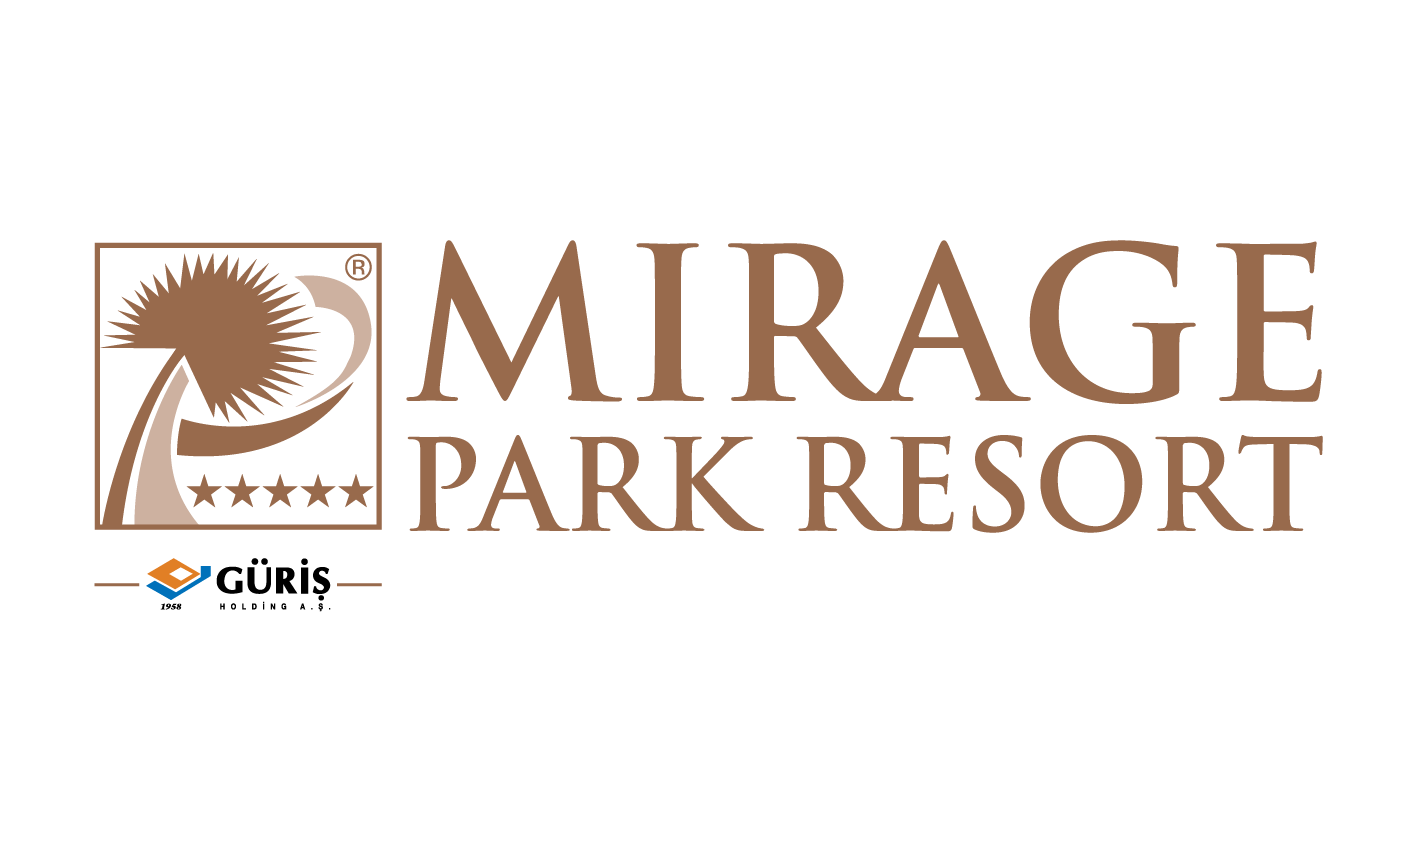 MİRAGE PARK RESORT